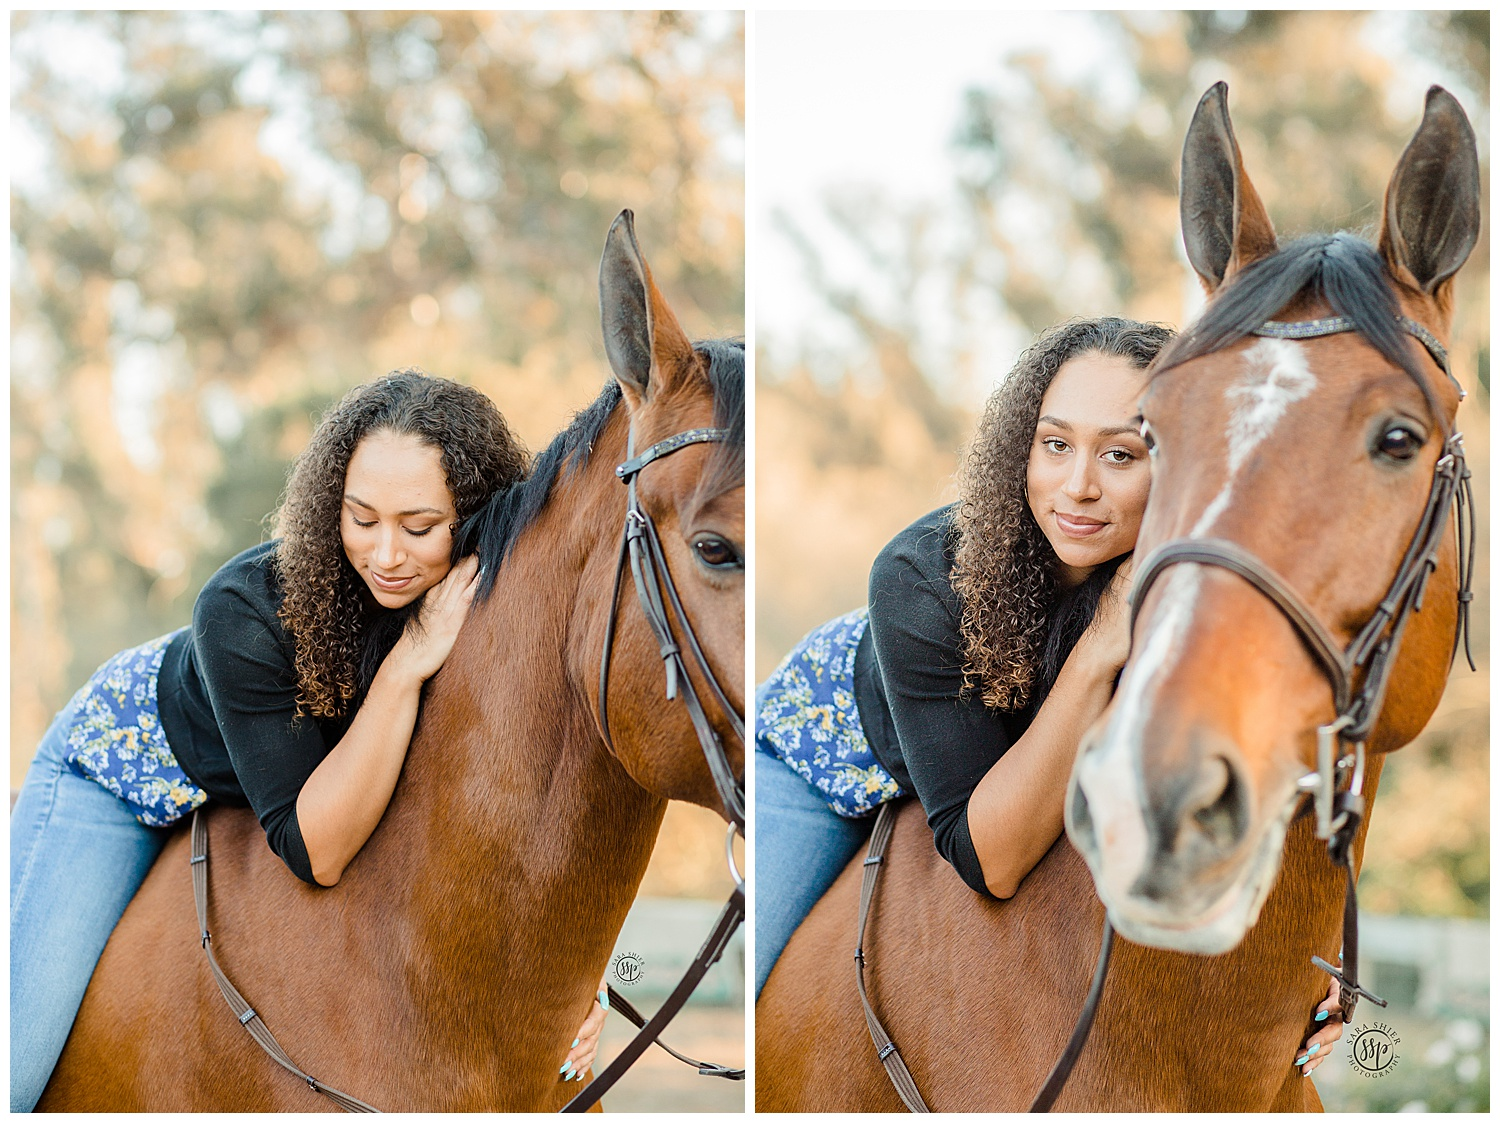 Black Background Horse Rider Equine Photographer Southern California Sara Shier Photography SoCal Equestrian Cowgirl_0242.jpg